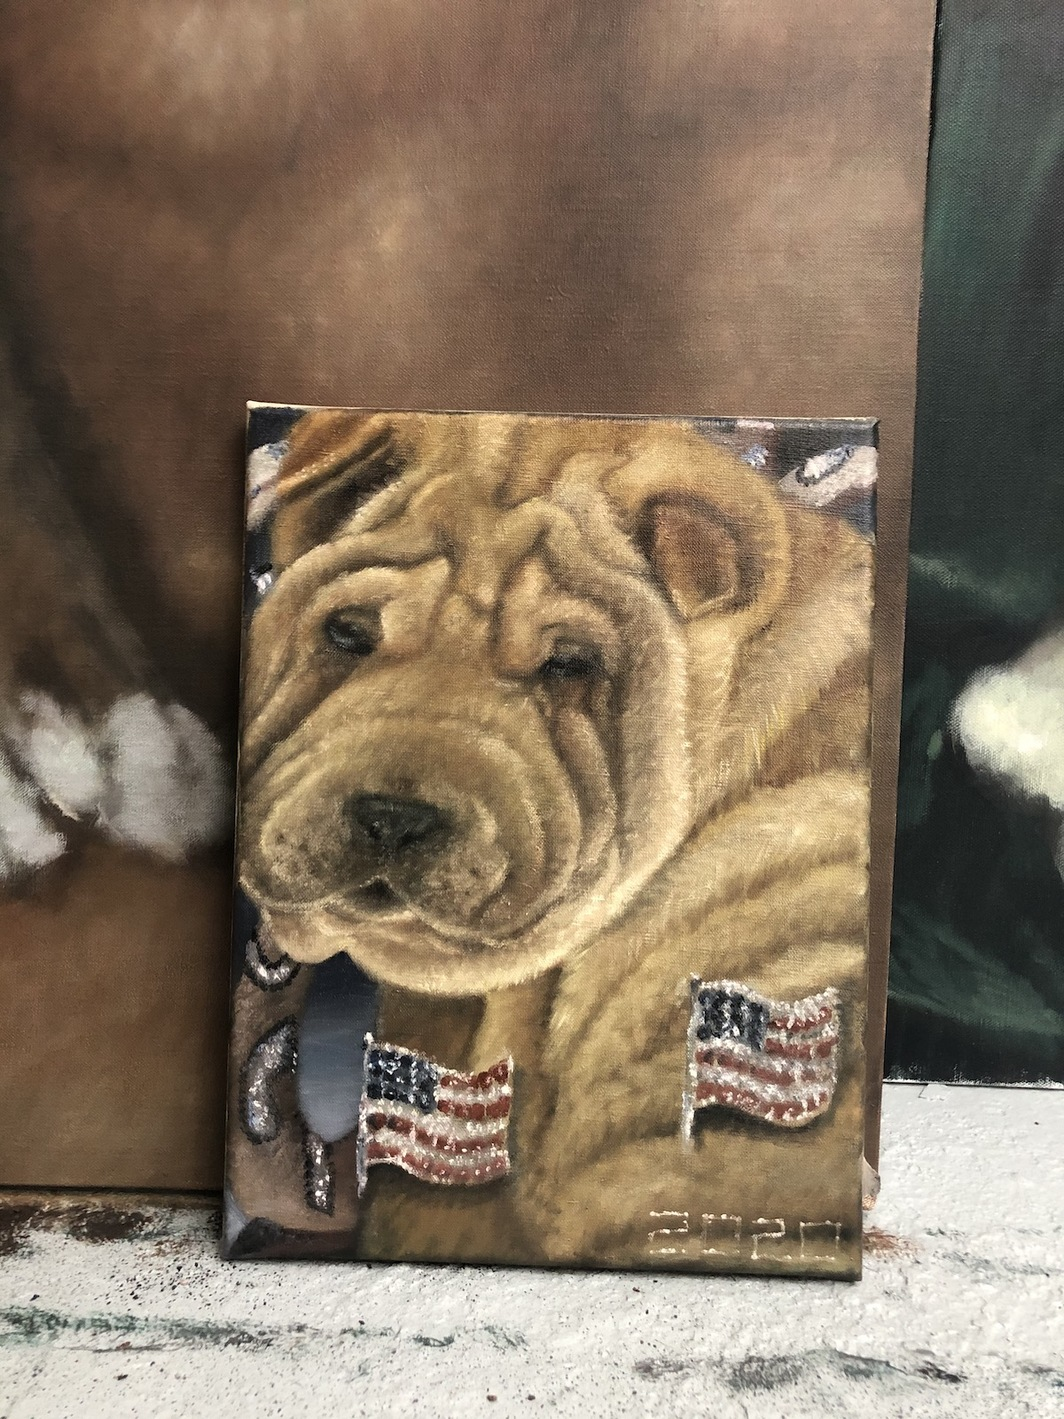 "Issy Wood, Shar-Pei! America!, 2020, oil on linen, 15 3/4 x 11 3/4""."